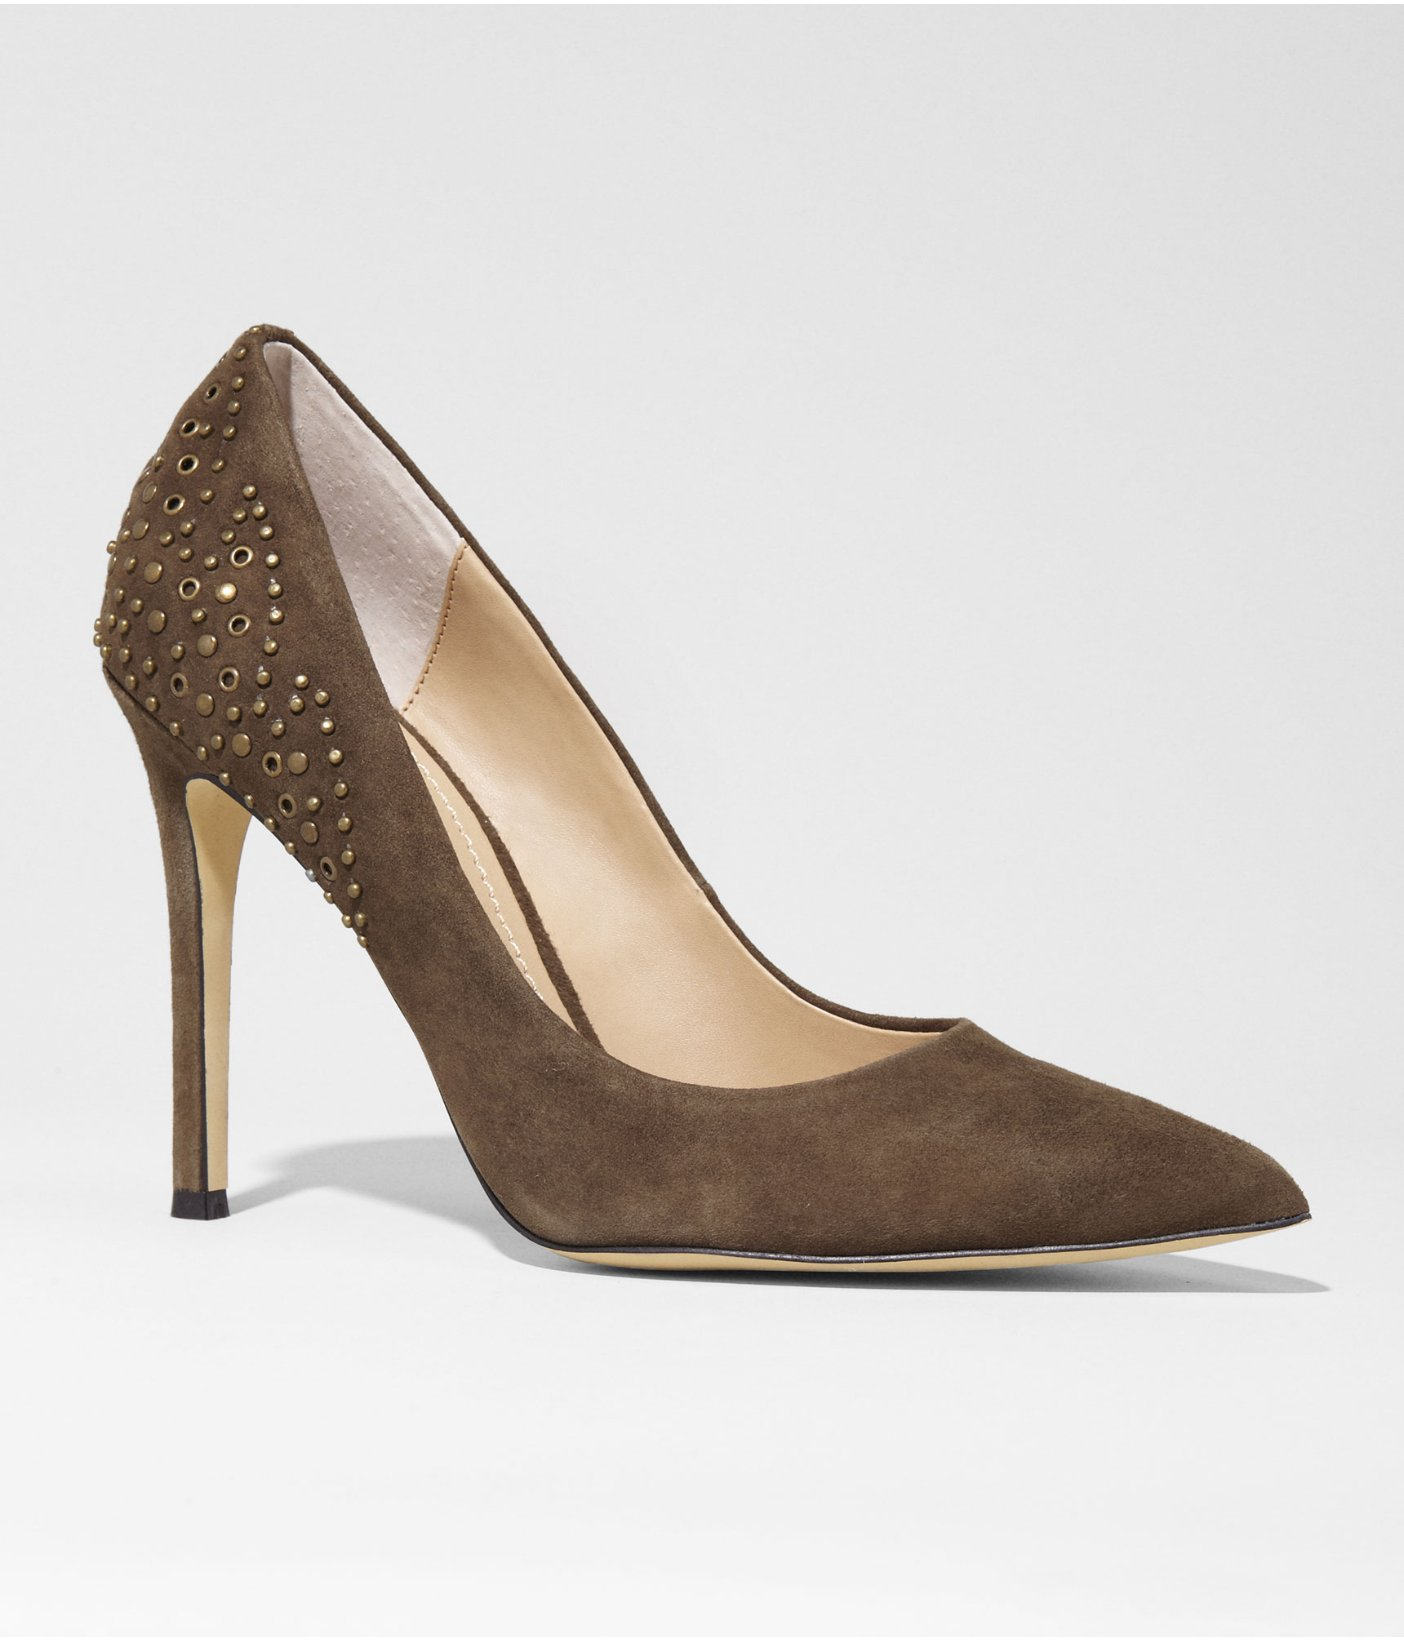 Express Suede Studded Pointed Toe Runway Pump In Green ...